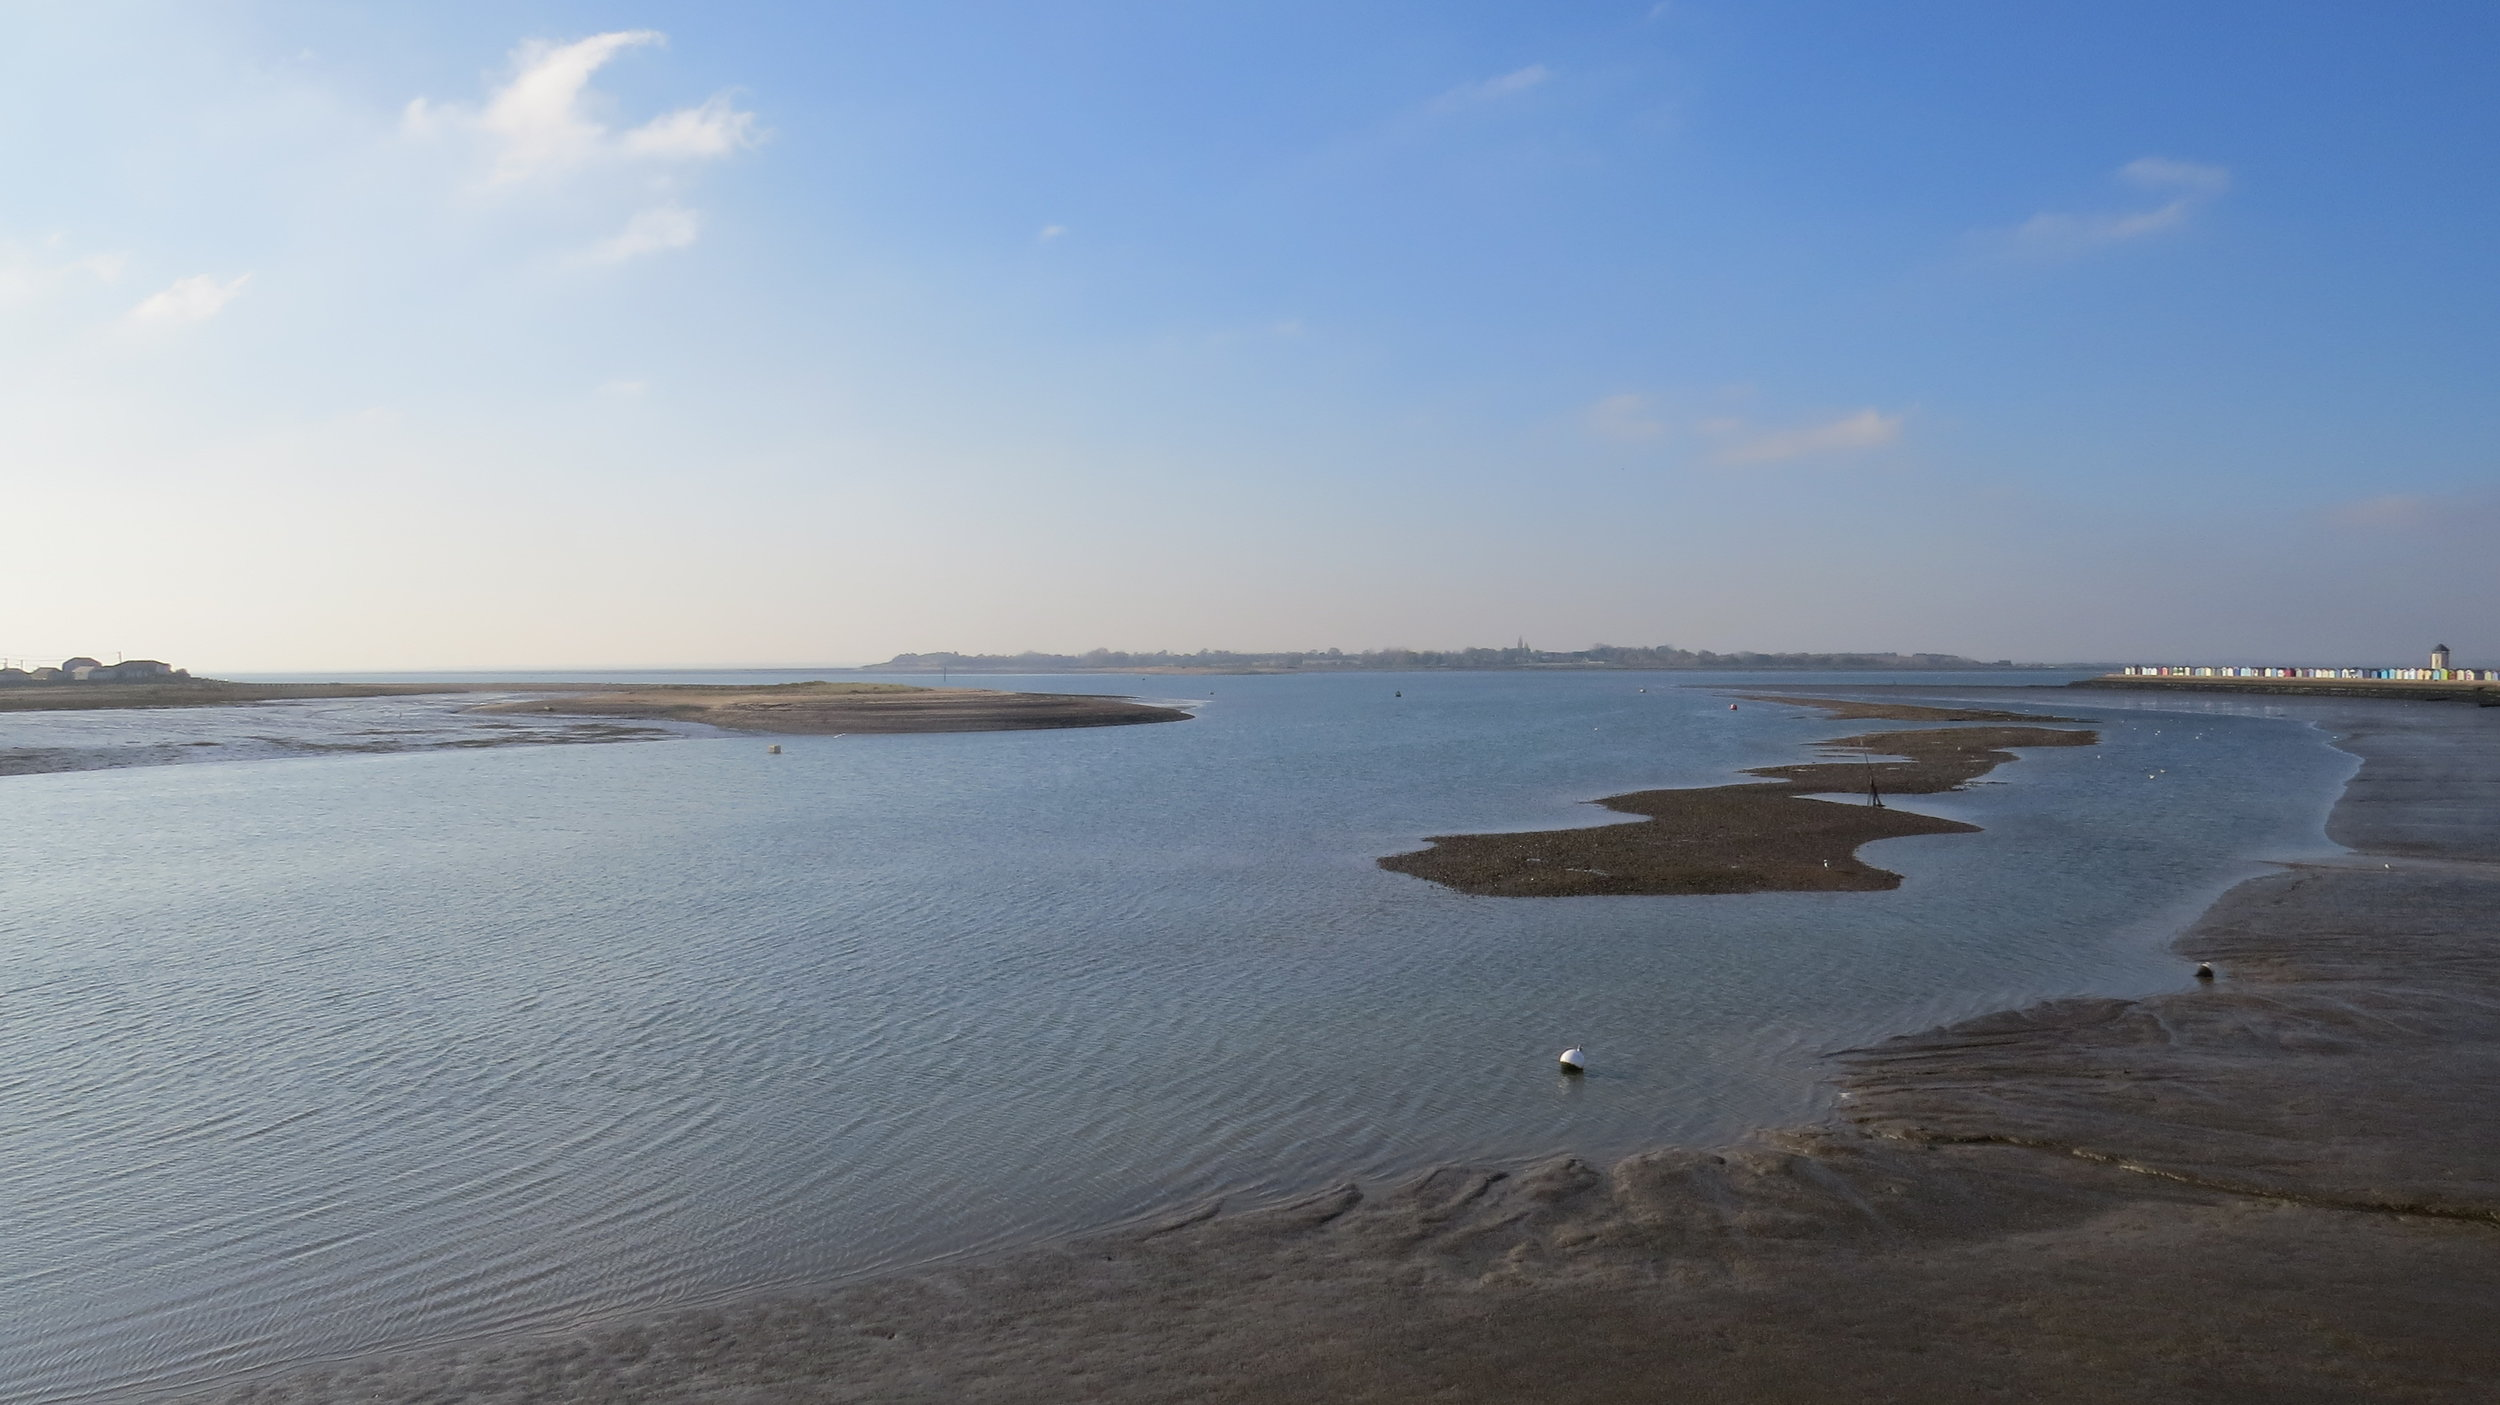 View from Brightlingsea